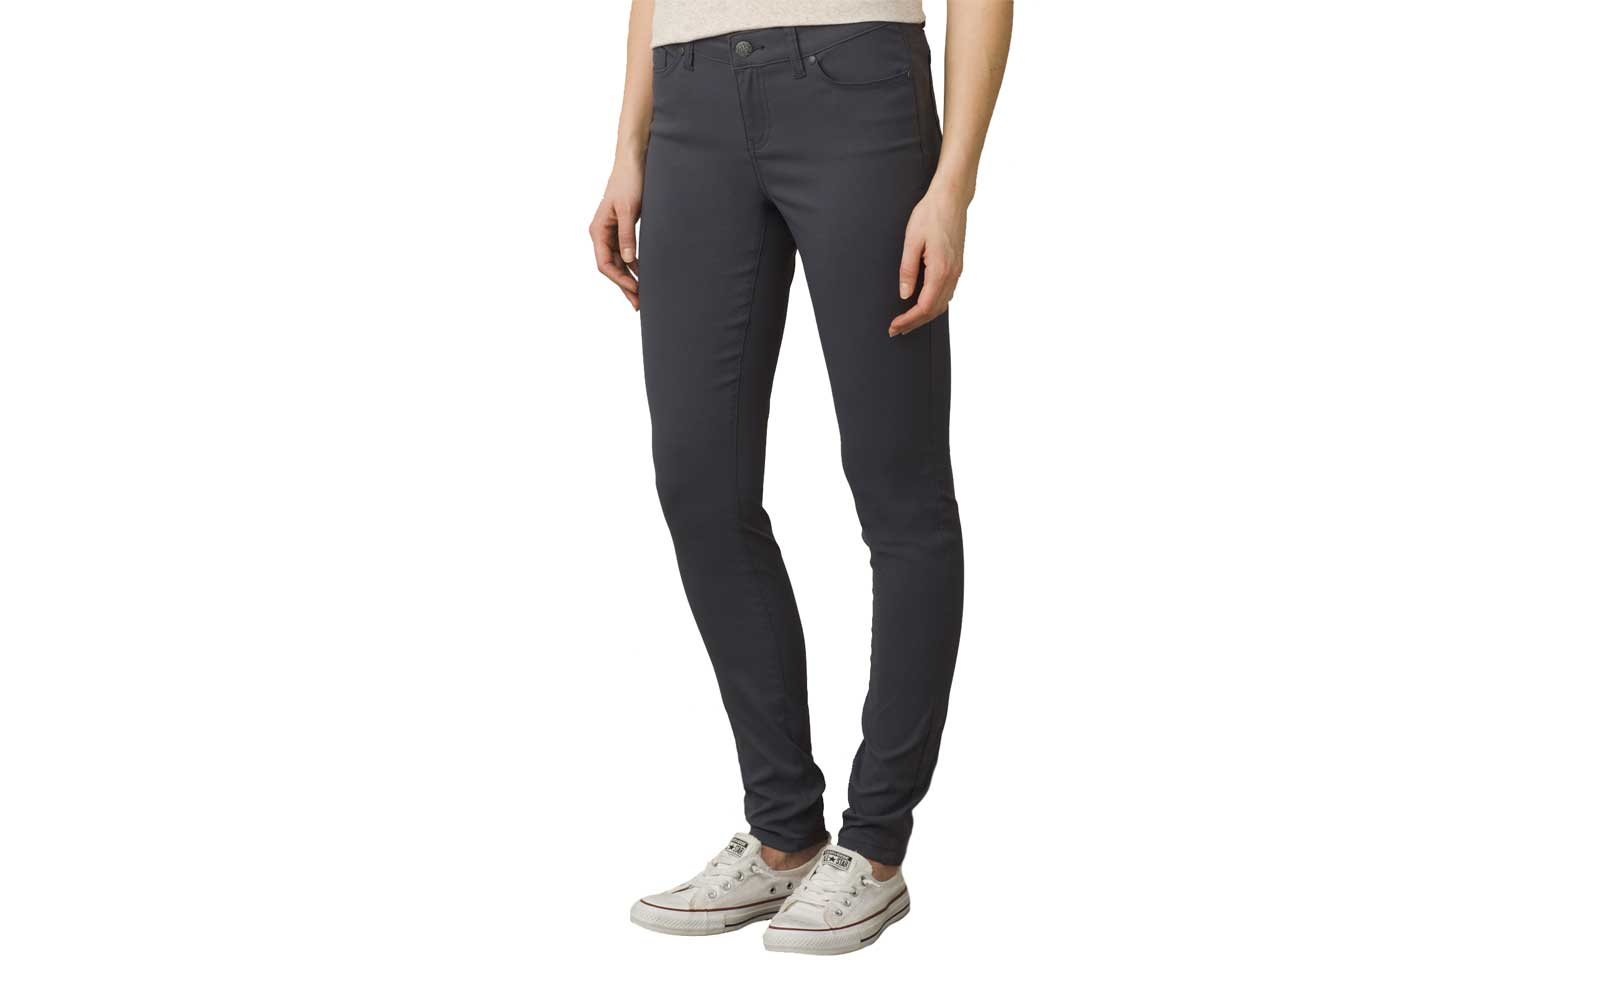 67cf27bbead The Best Travel Pants for Women Who Hate Flying in Jeans | Travel + ...